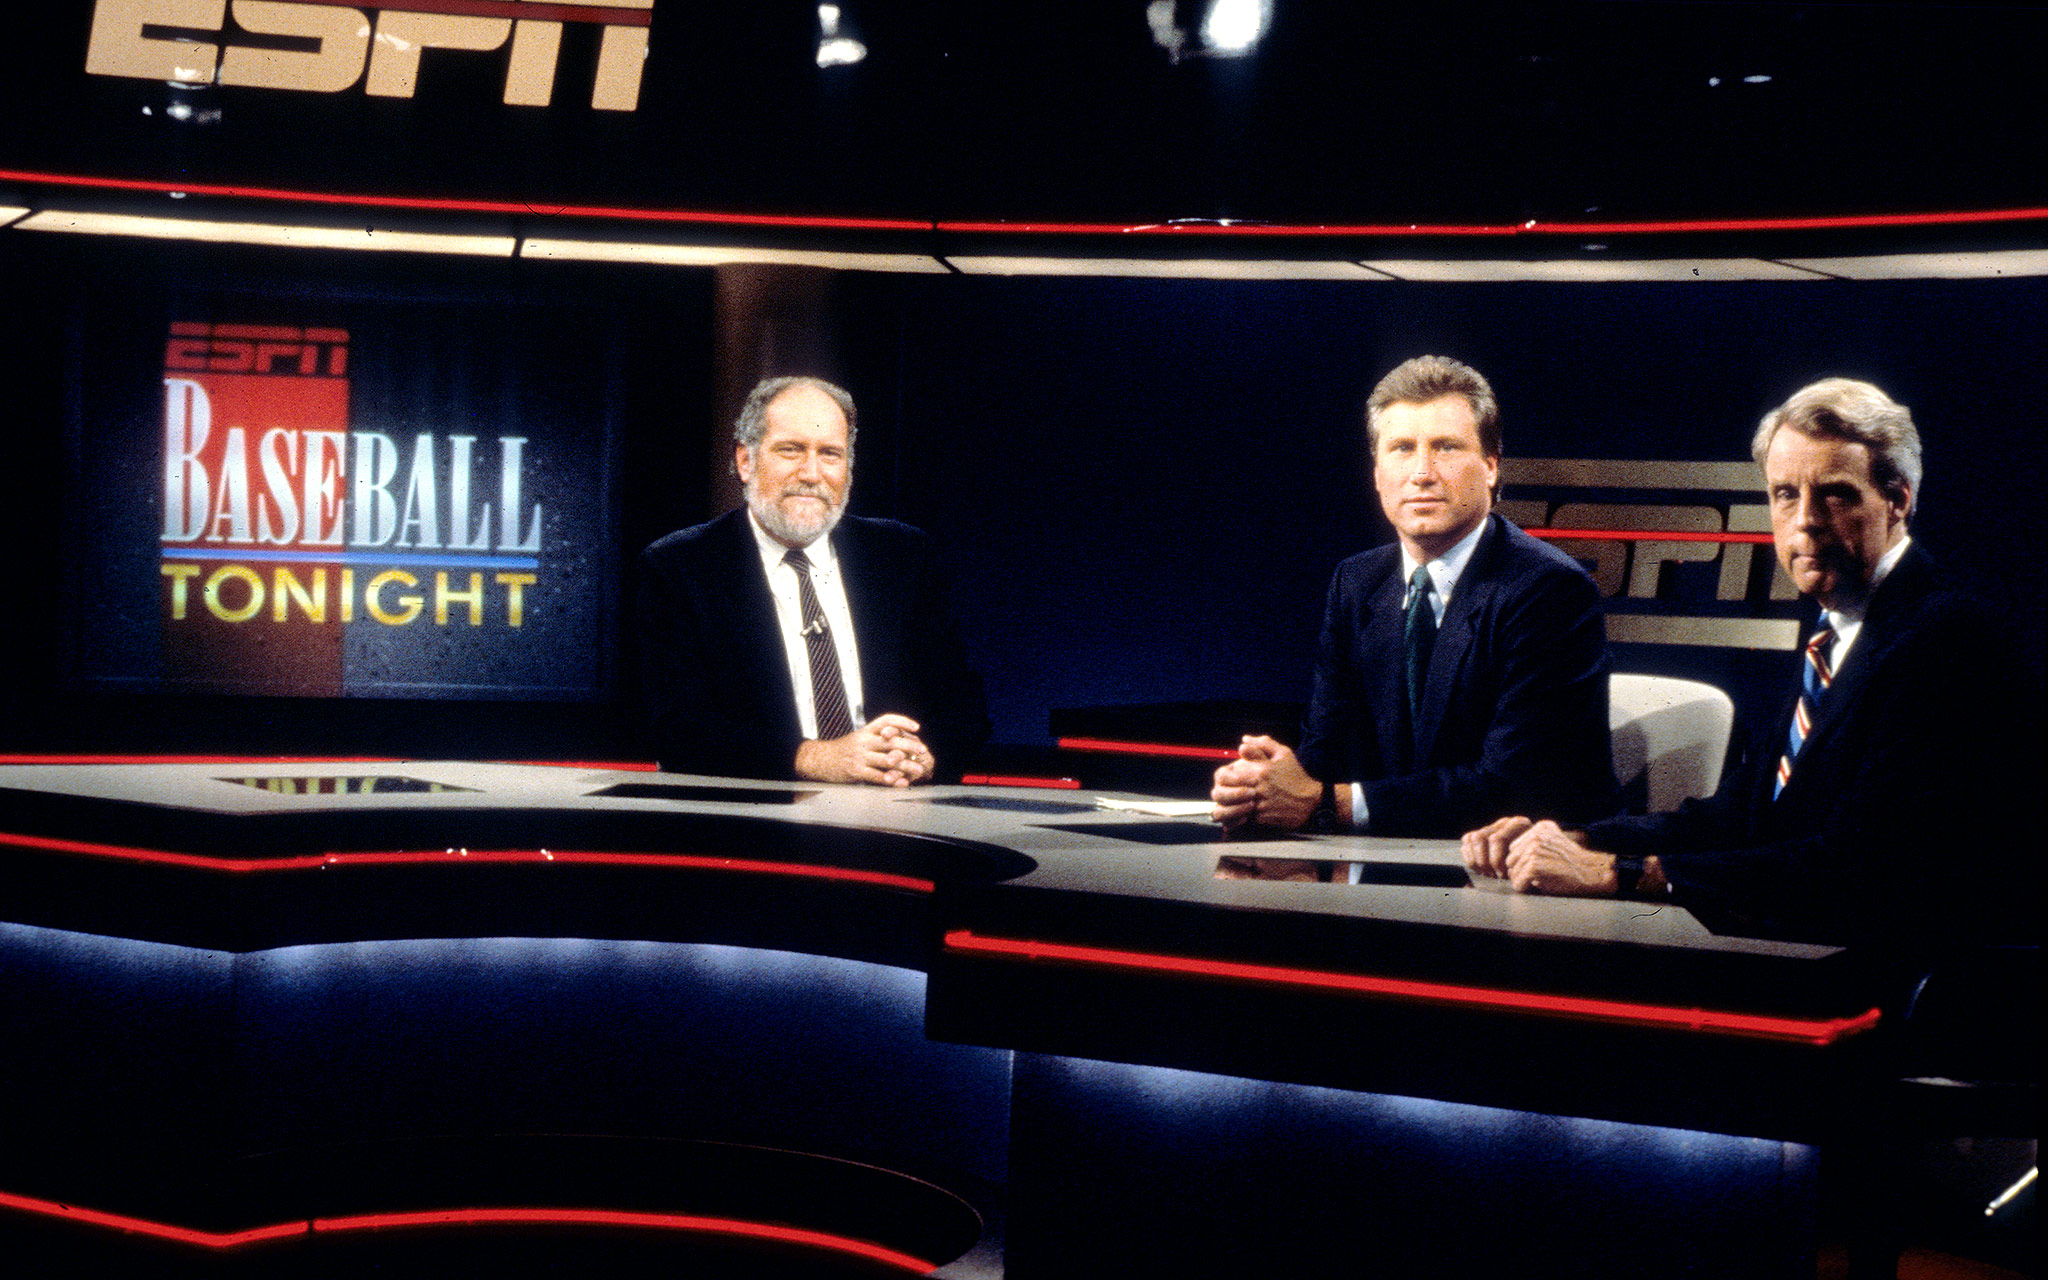 1990: Dave Marash, Ray Knight & Peter Gammons